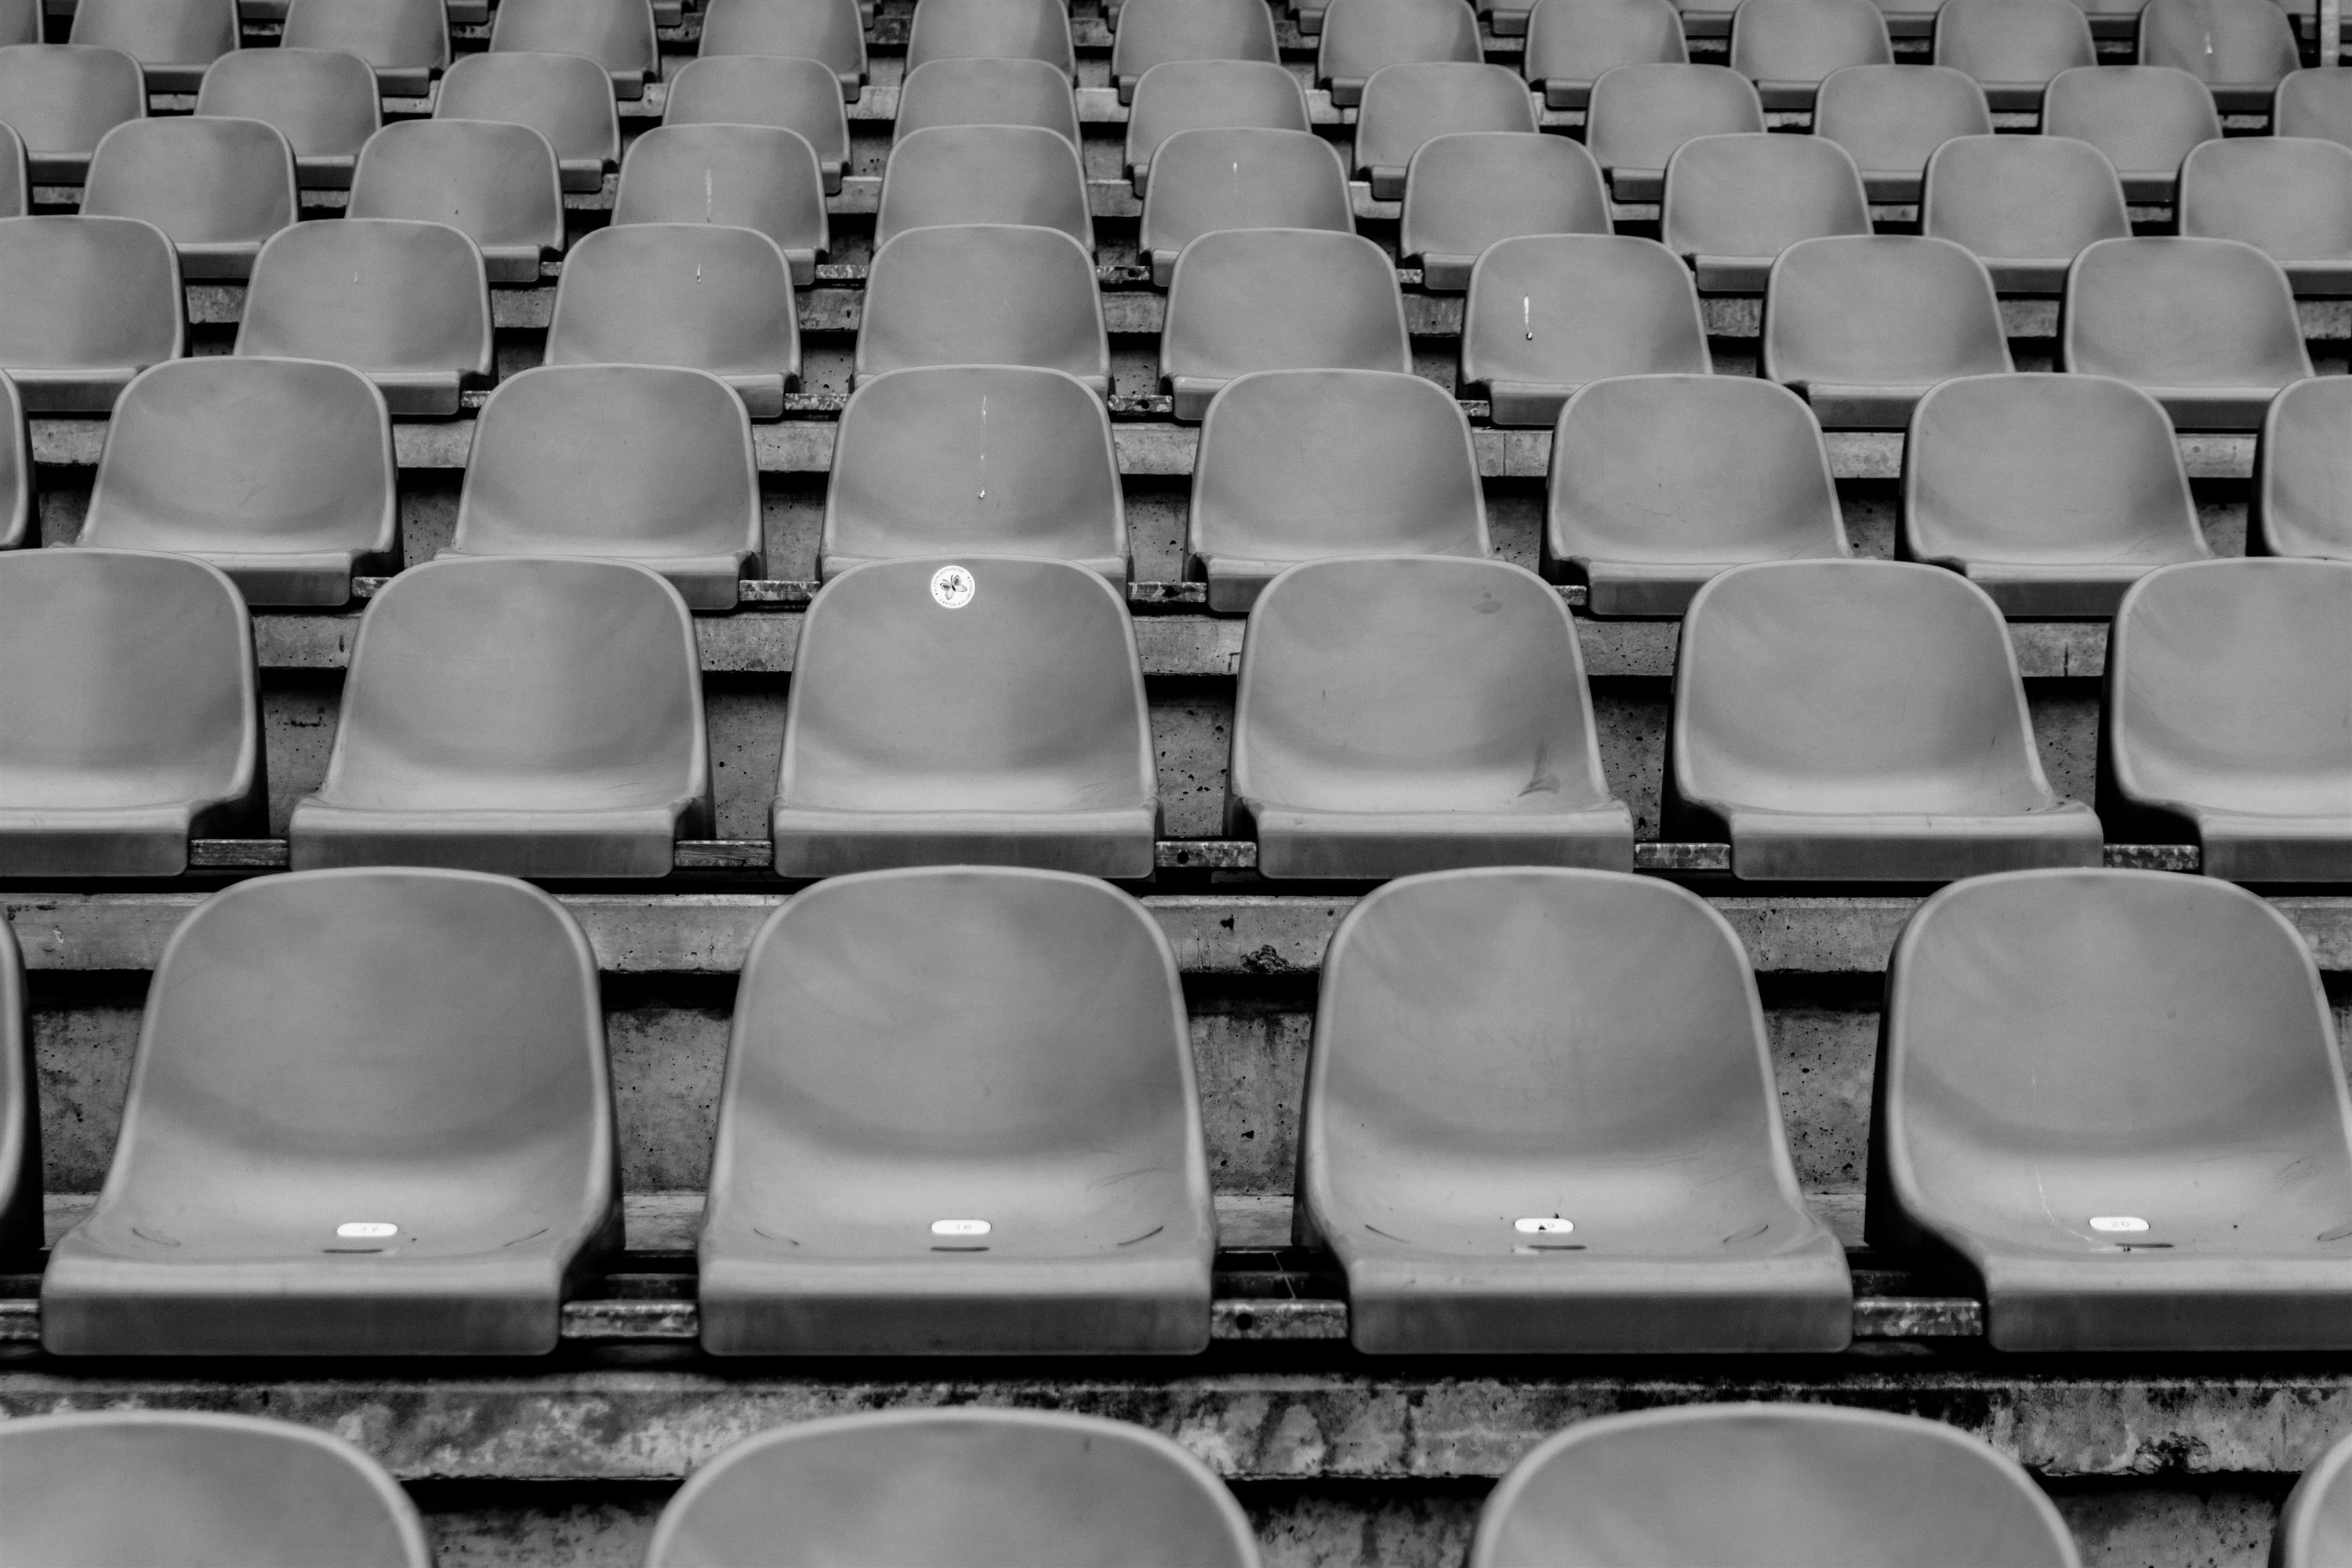 grass-black-and-white-white-sport-game-audience-1331792-pxhere_com.jpg